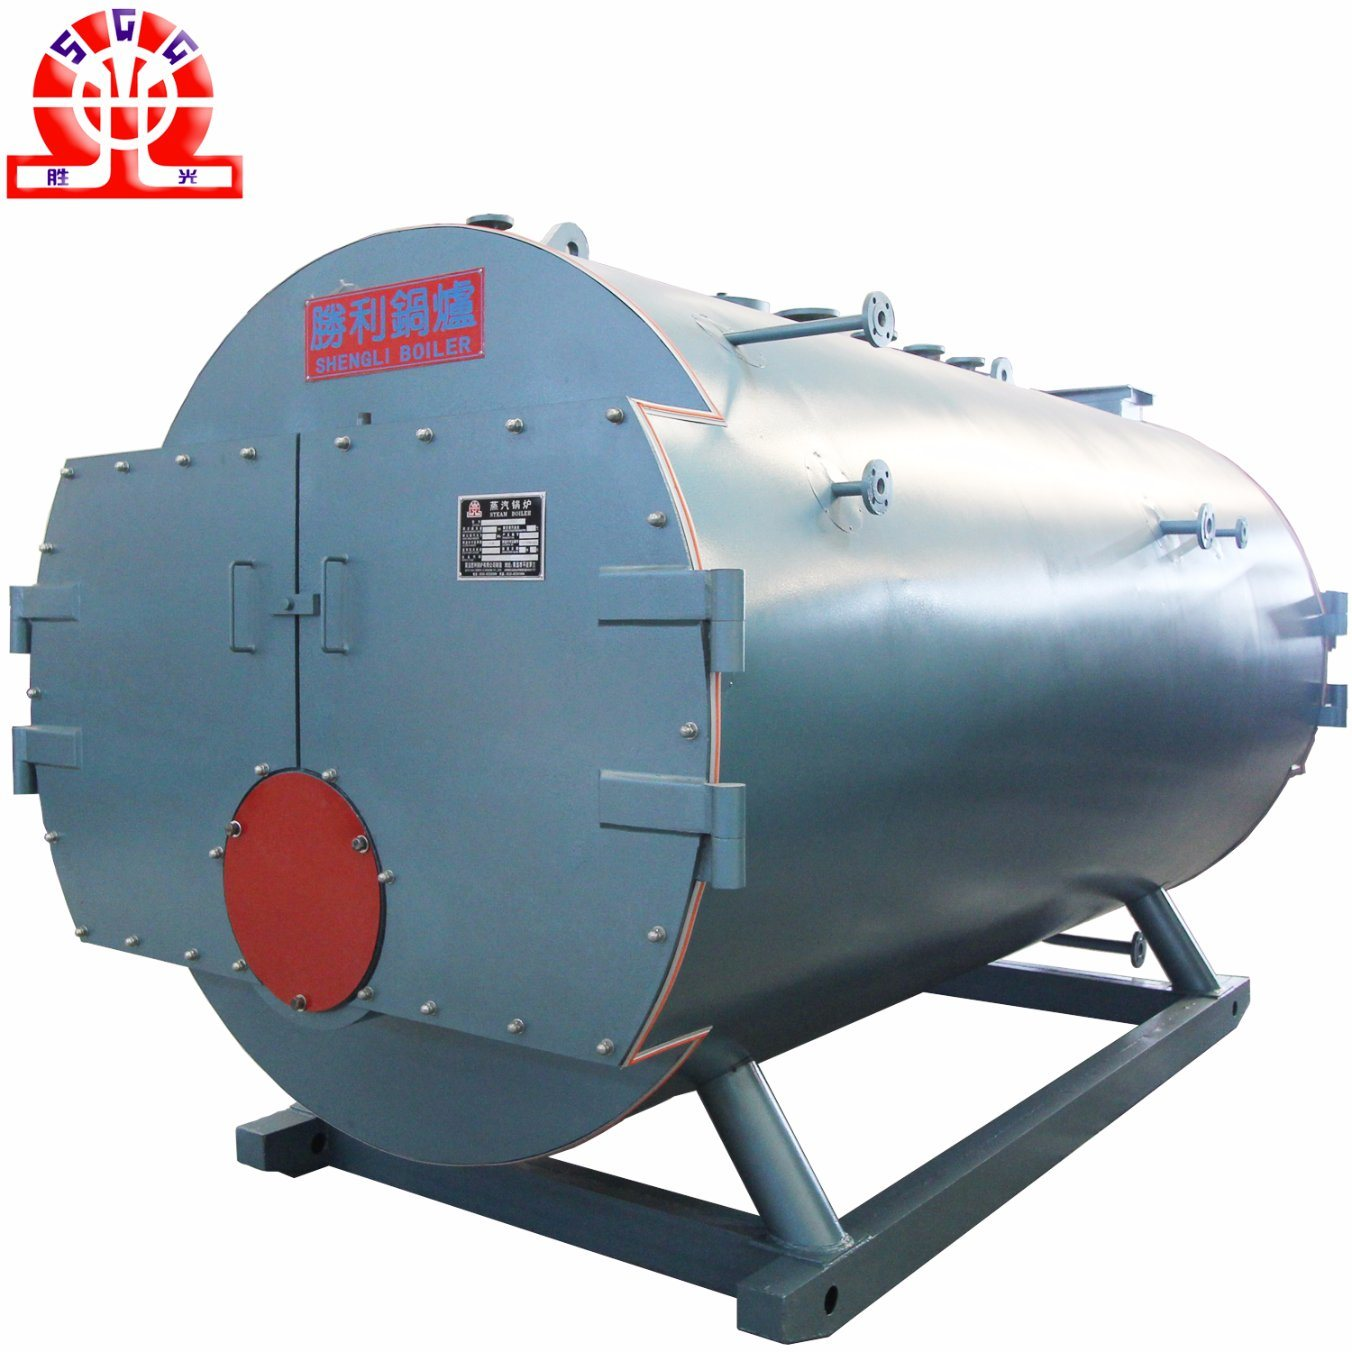 China Fire Tube Horizontal Hot Water Boiler Manufacture - China ...